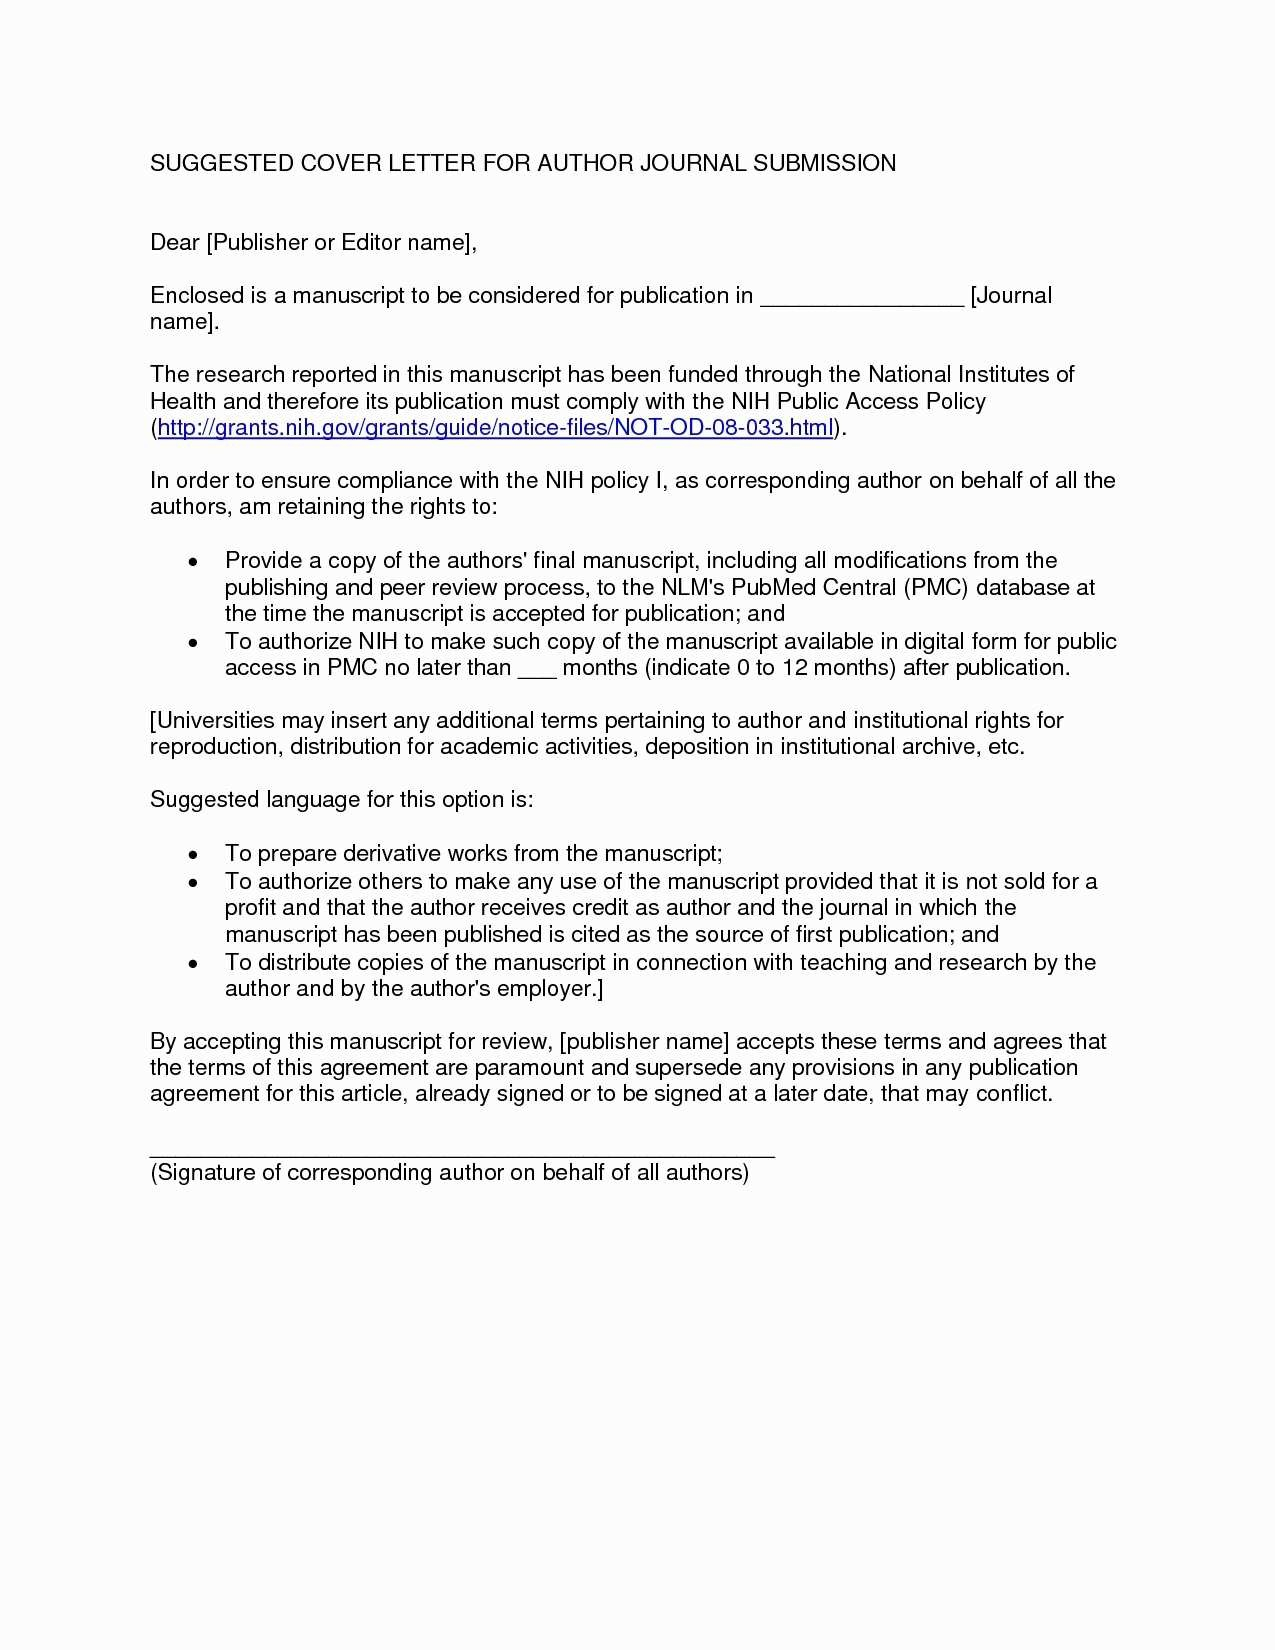 Reply to Patient Complaint Letter Template - Replying to A Plaint Letter Template